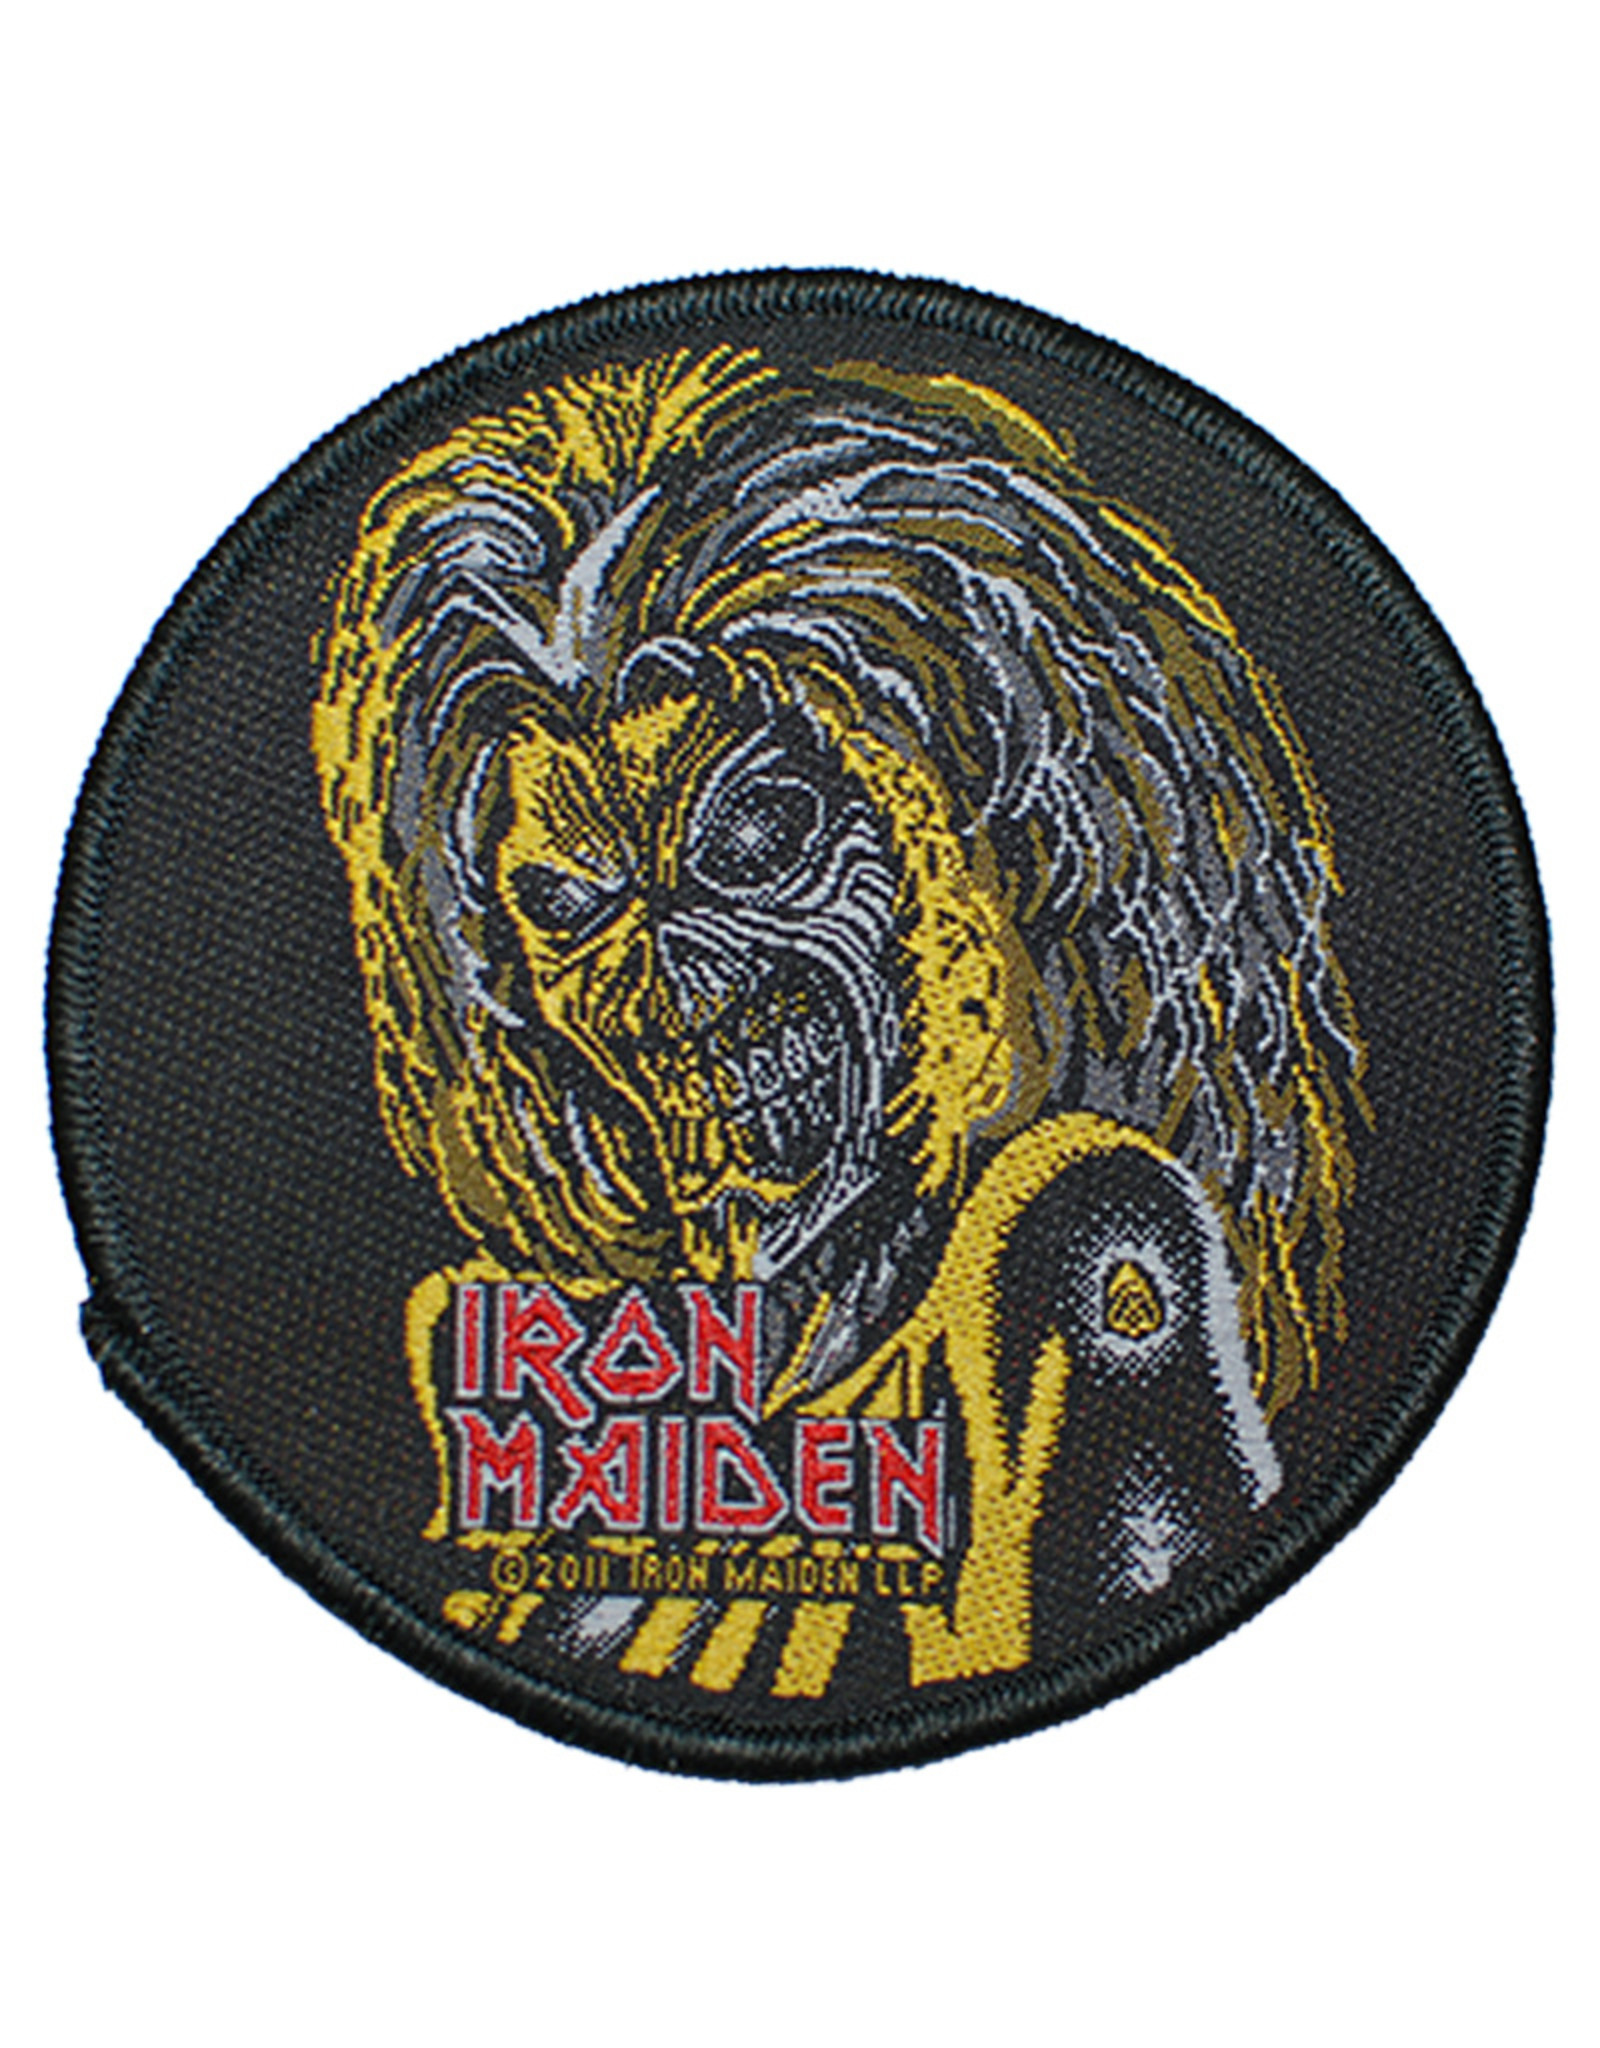 Star 500 Concert Series On Hollywood Patch Iron Maiden Killers Face